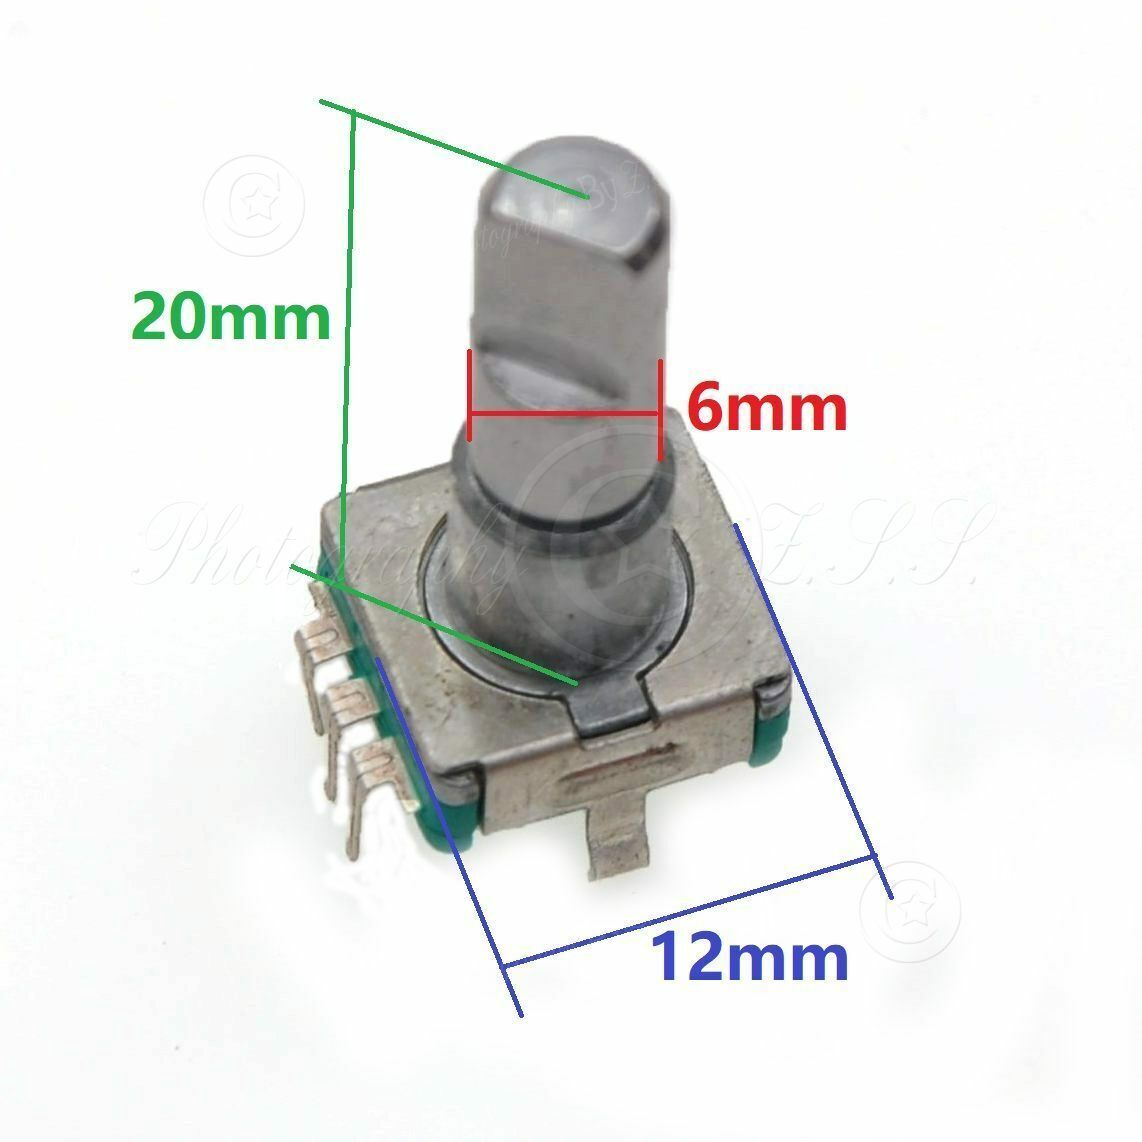 Details about  /Universal Function Selection Knob Start Switch Parts For Galanz Microwave Oven